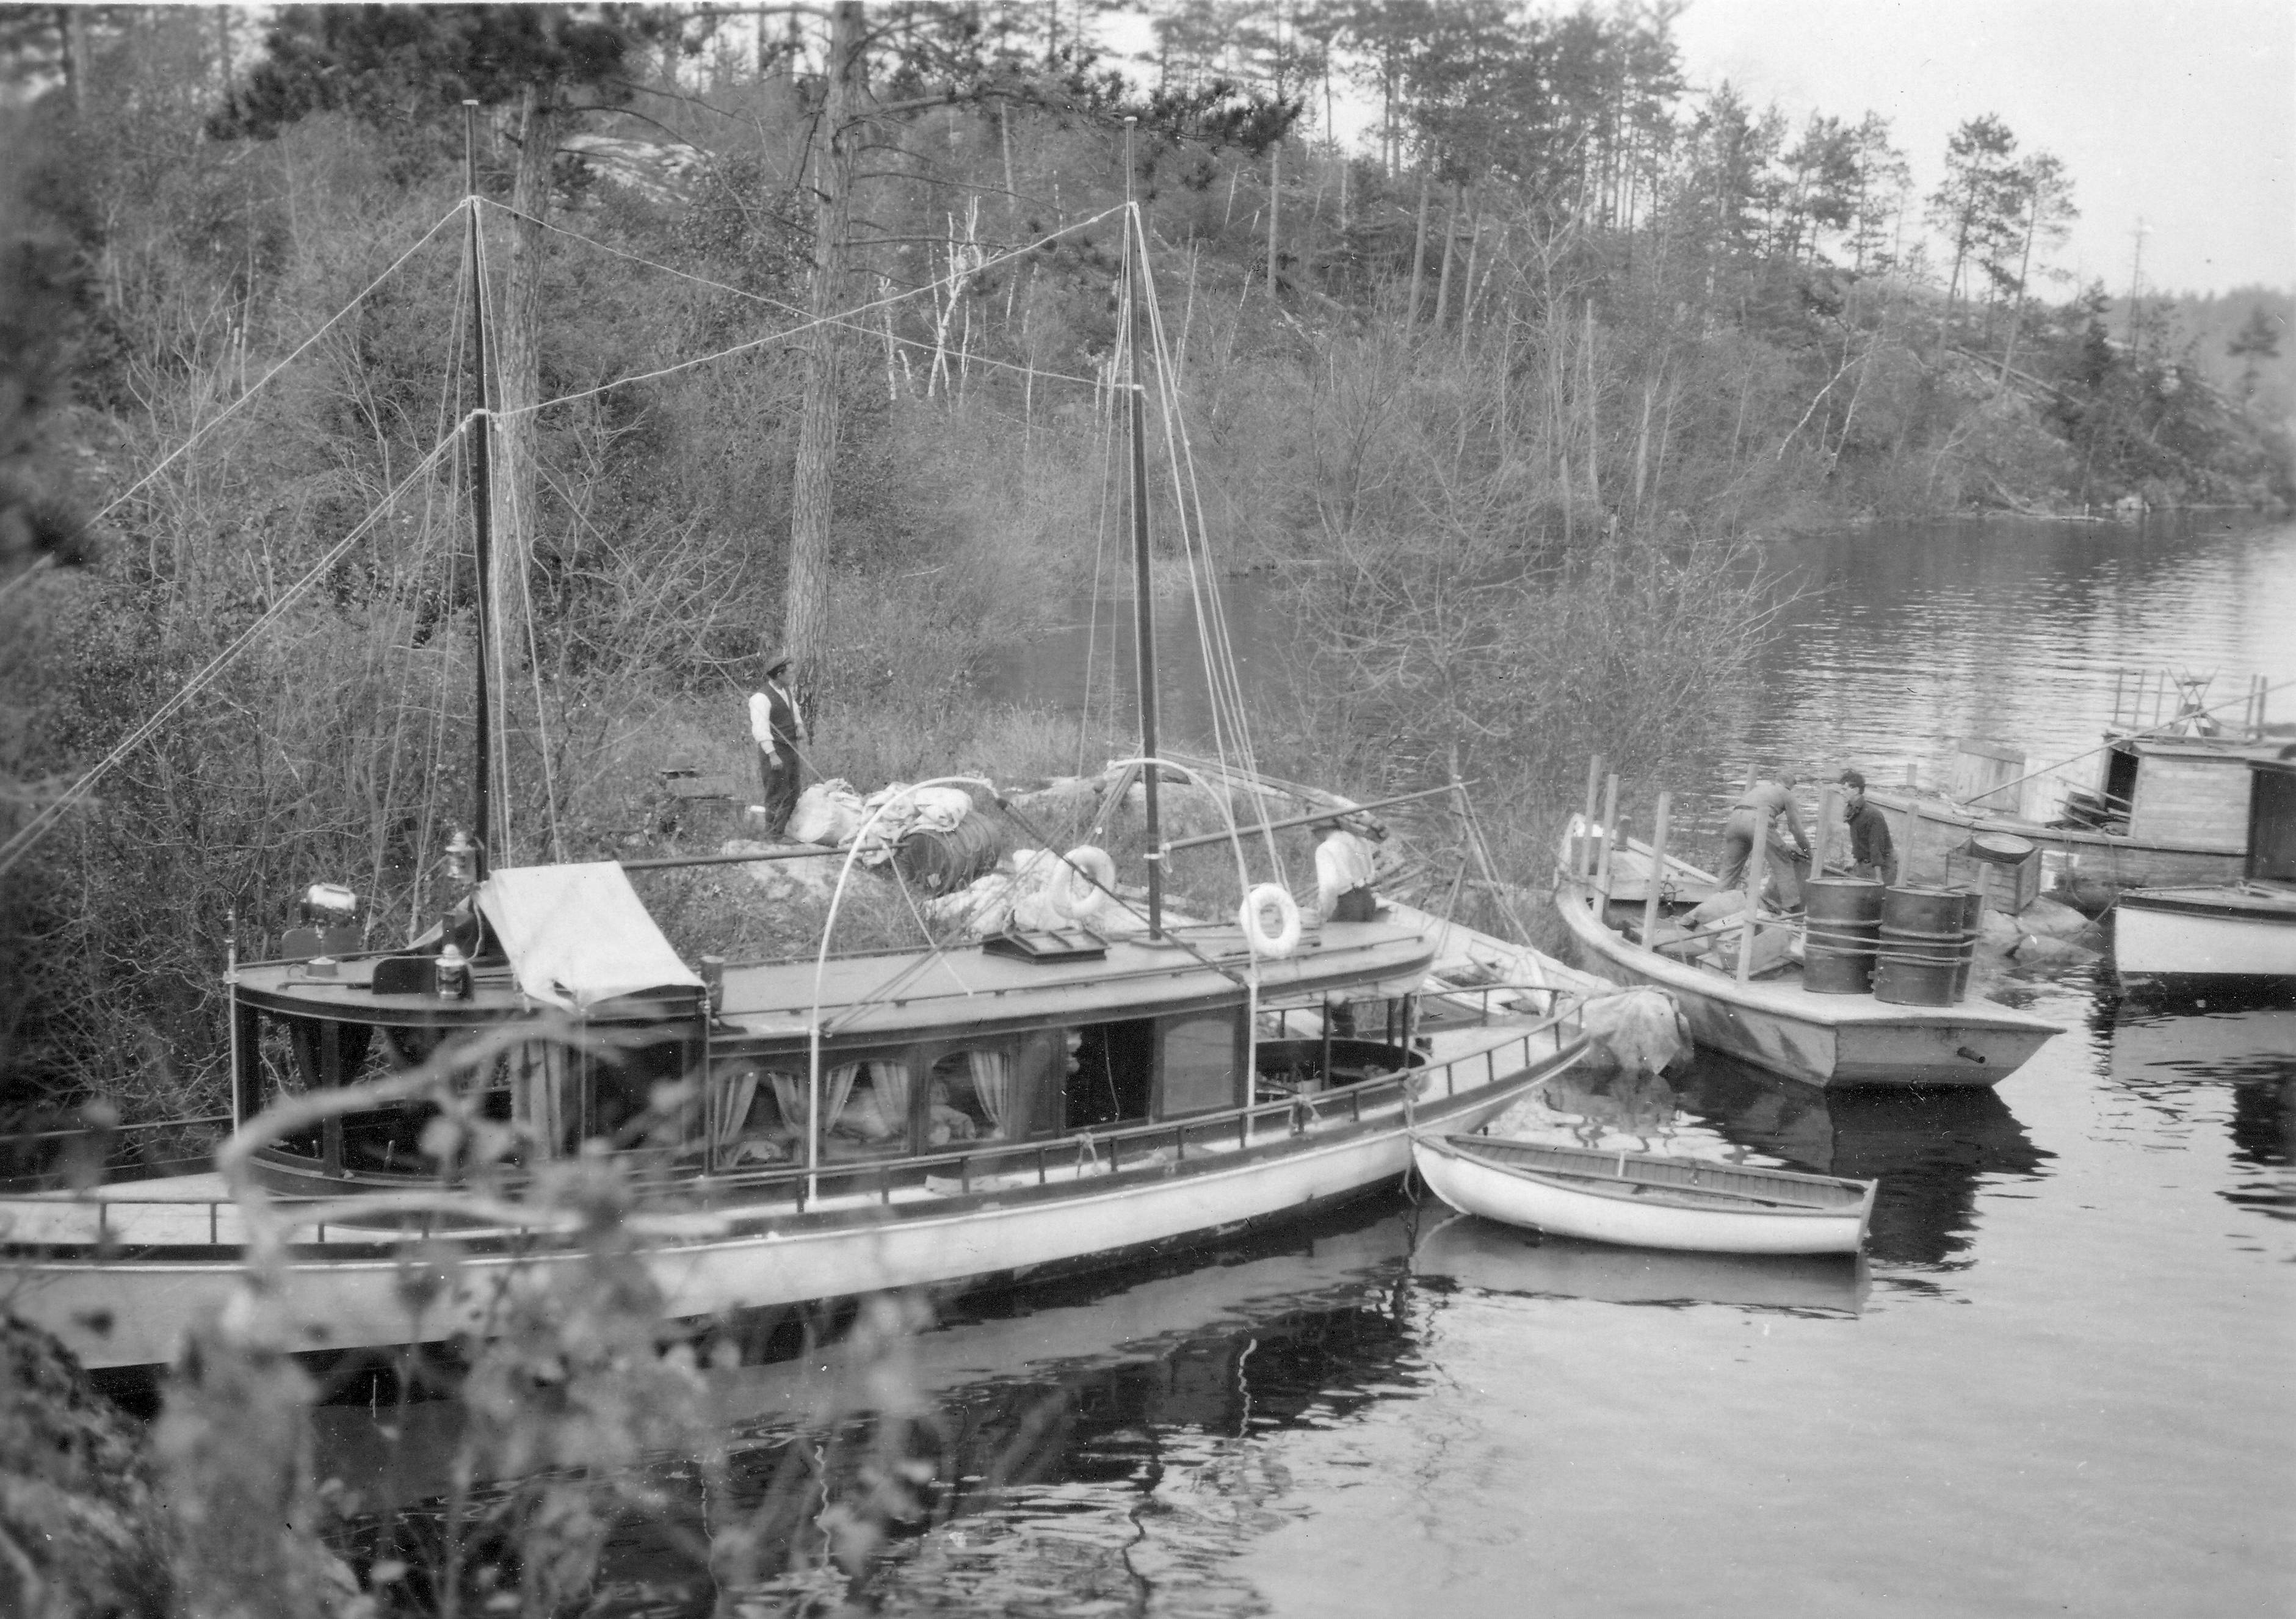 photo of survey vessels on the banks of a river